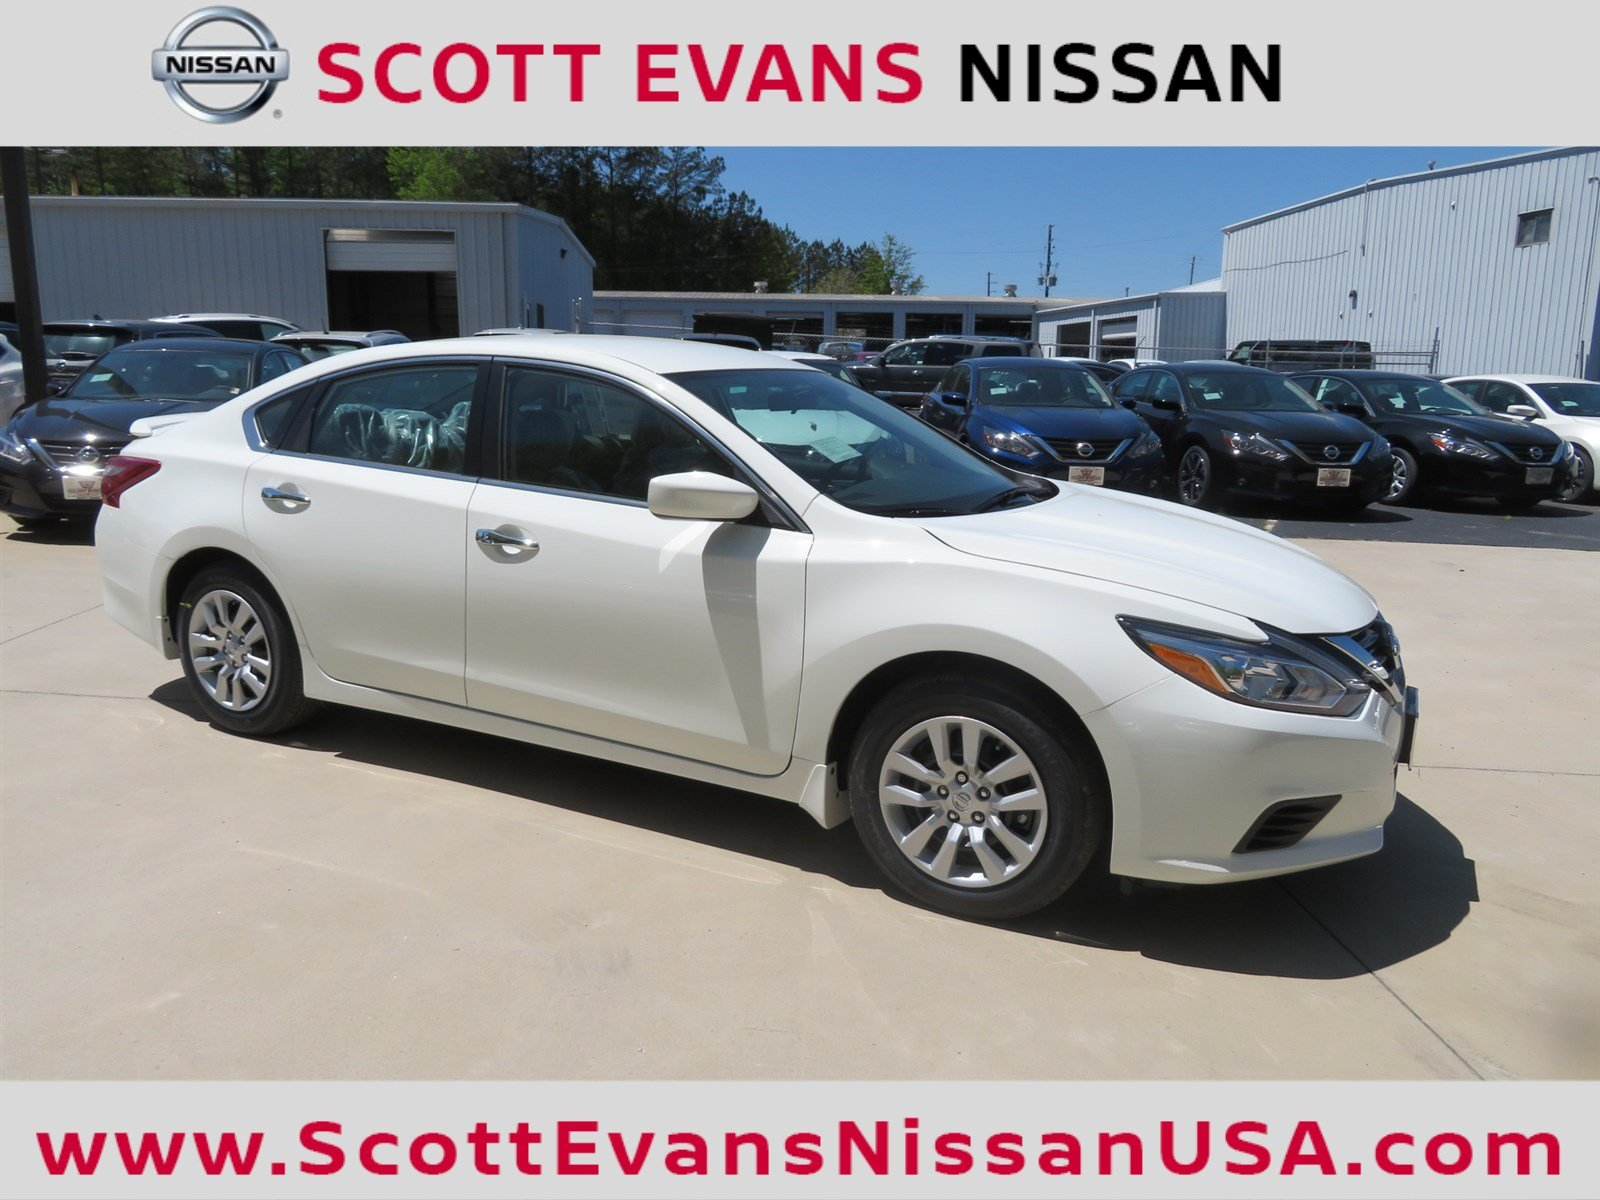 New 2018 Nissan Altima 2 5 S 4dr Car in Carrollton